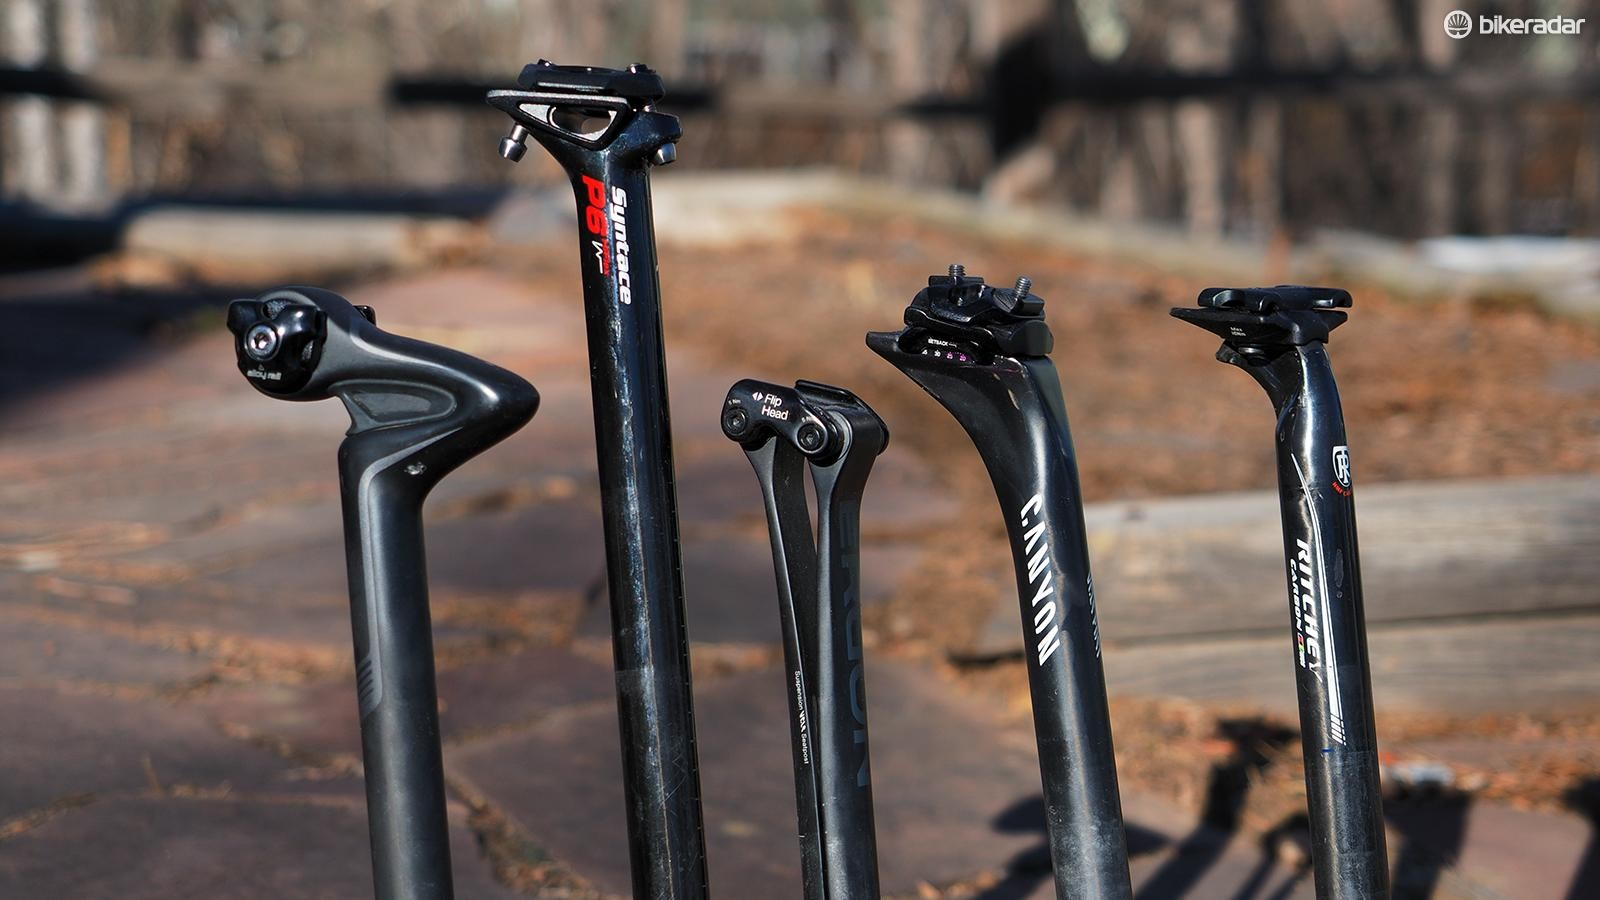 BikeRadar tested five of the top soft-riding carbon seatposts both in the lab and on the road – which one provides the best overall ride?